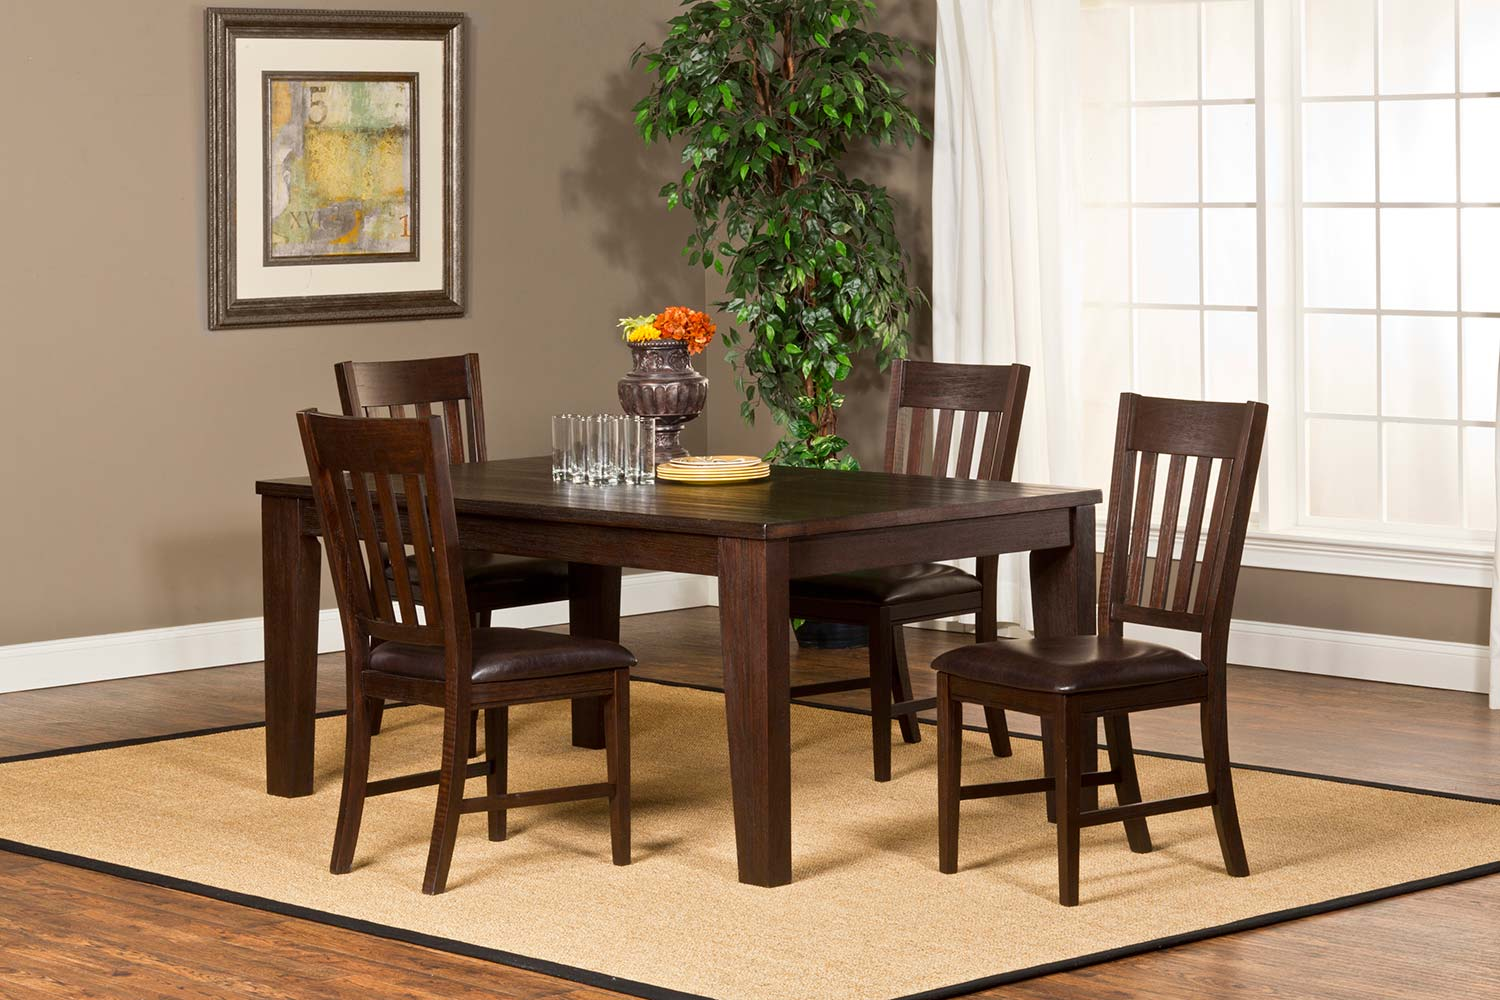 Hillsdale Brooklawn 5-Piece Dining Set - Smoke Brown/Dark Brown Vinyl